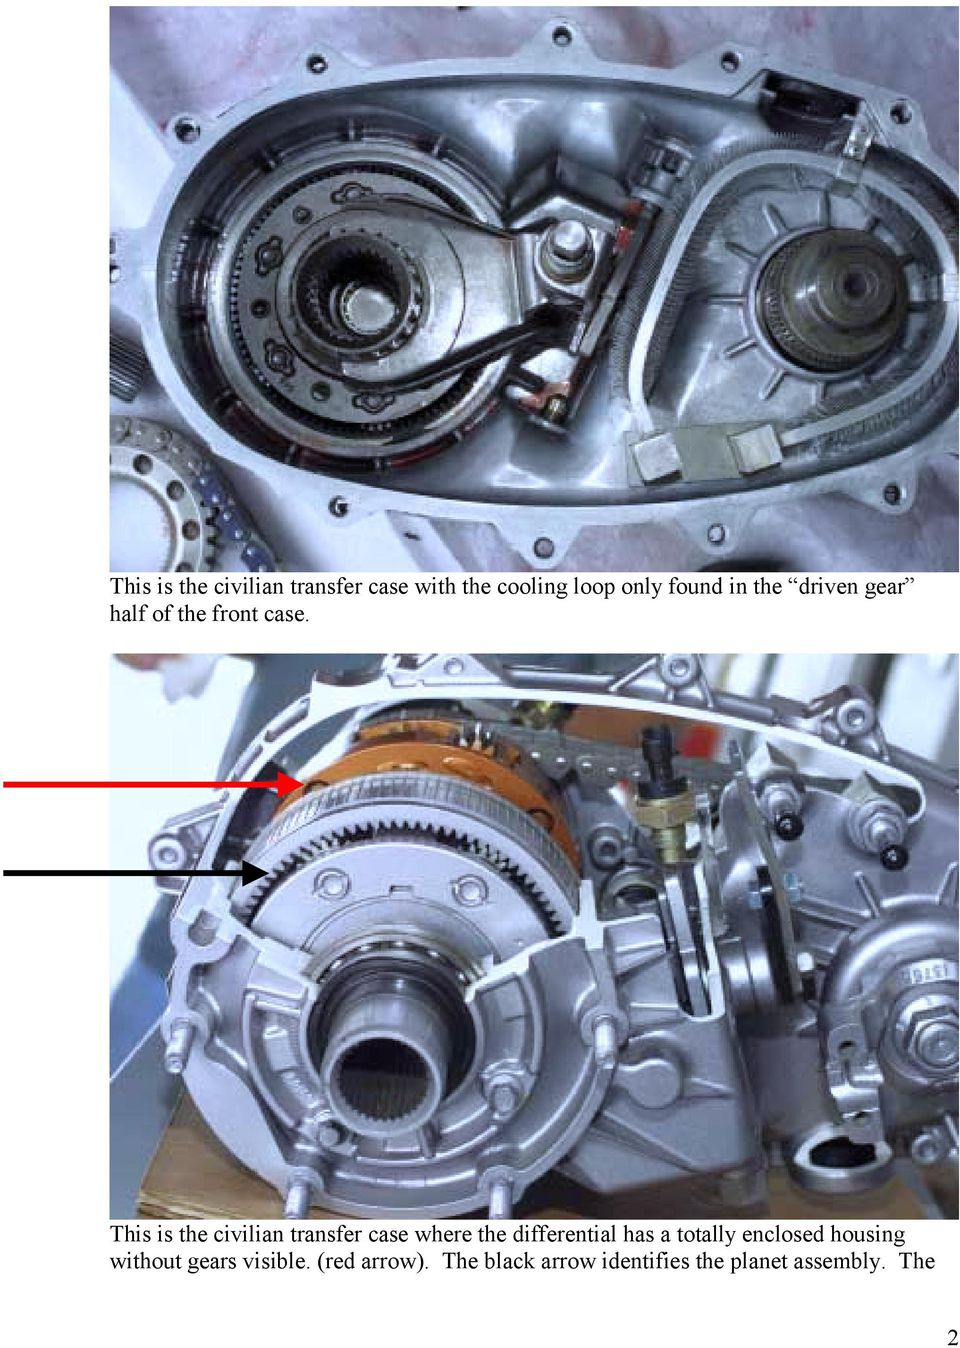 This is the civilian transfer case where the differential has a totally